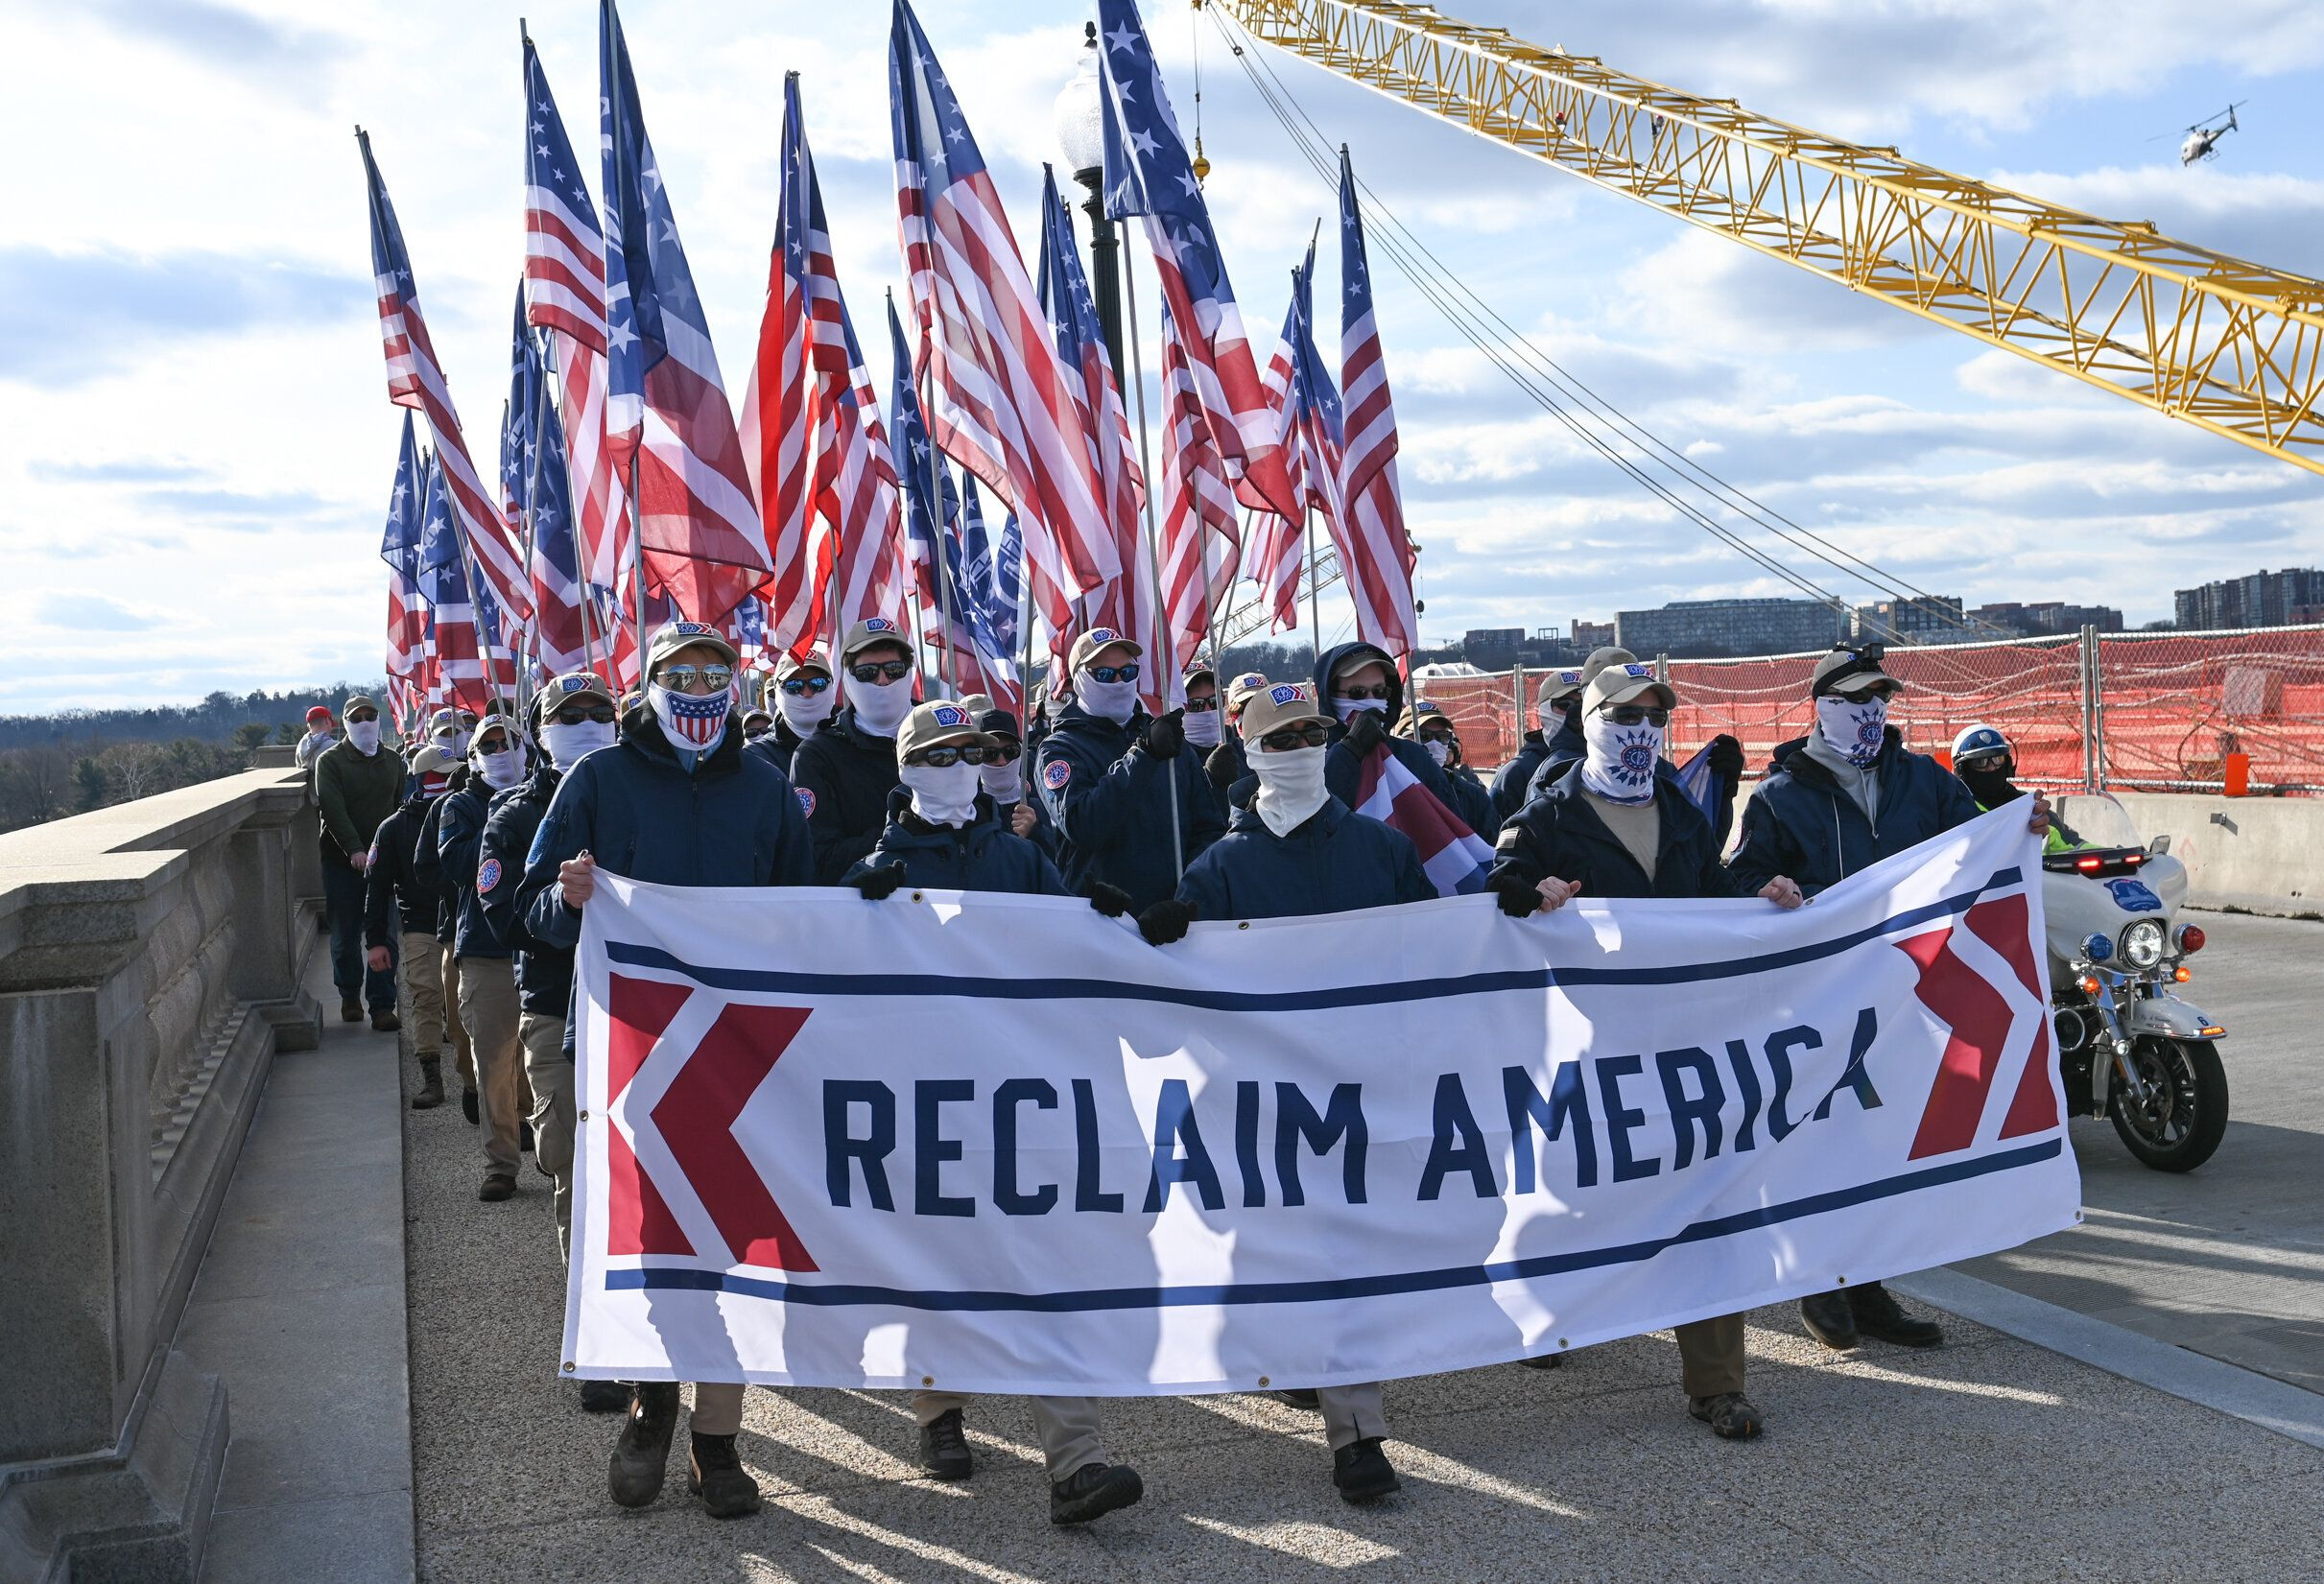 Patriot Front members march from the Lincoln Memorial to the U.S. Capitol, escorted by D.C. Metro Police, on Feb. 8, 2020.